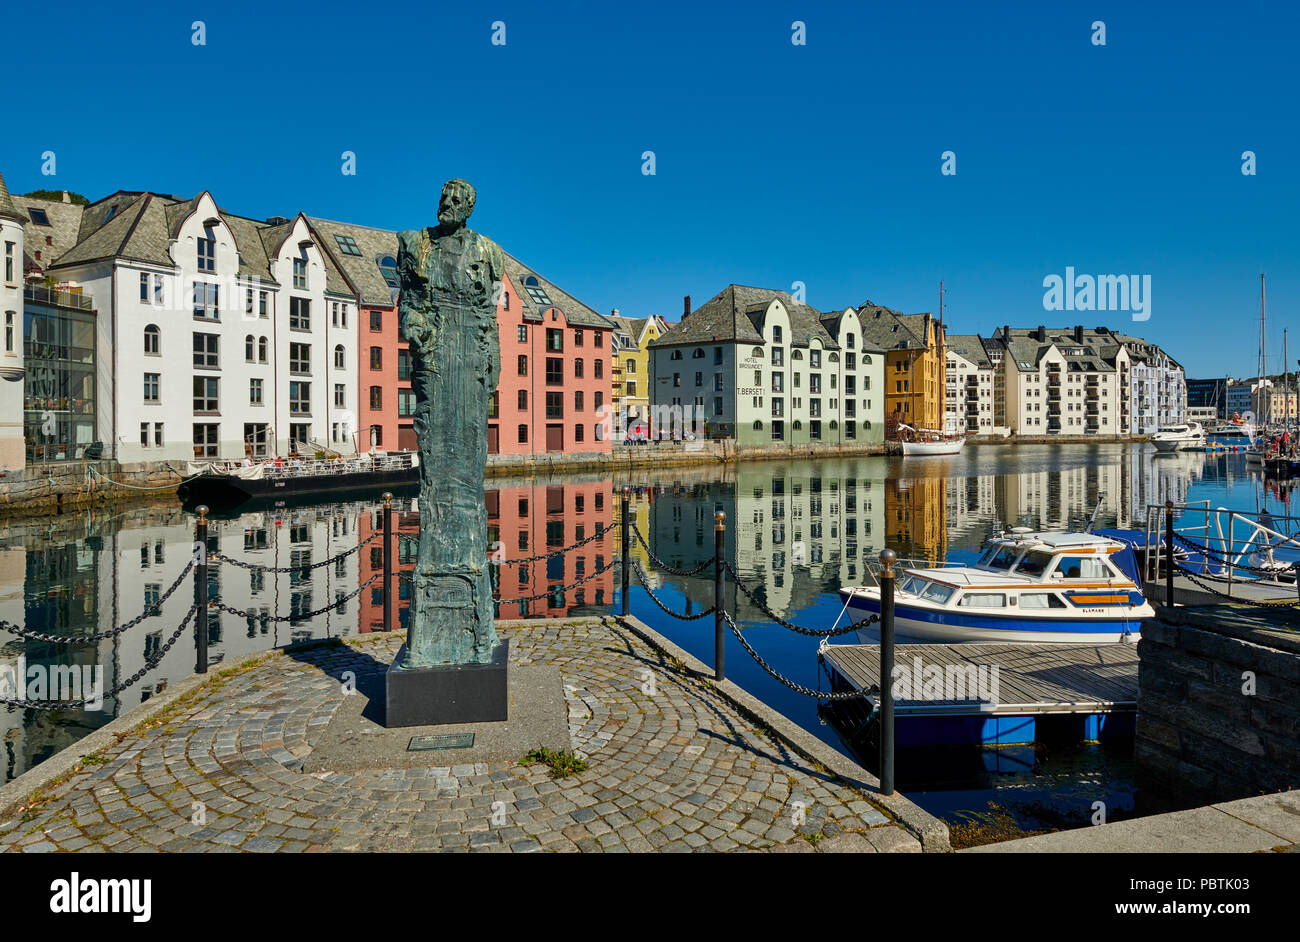 statue in front of view of old harbor with historical Art Nouveau buildings, Ålesund, Norway, Europe - Stock Image